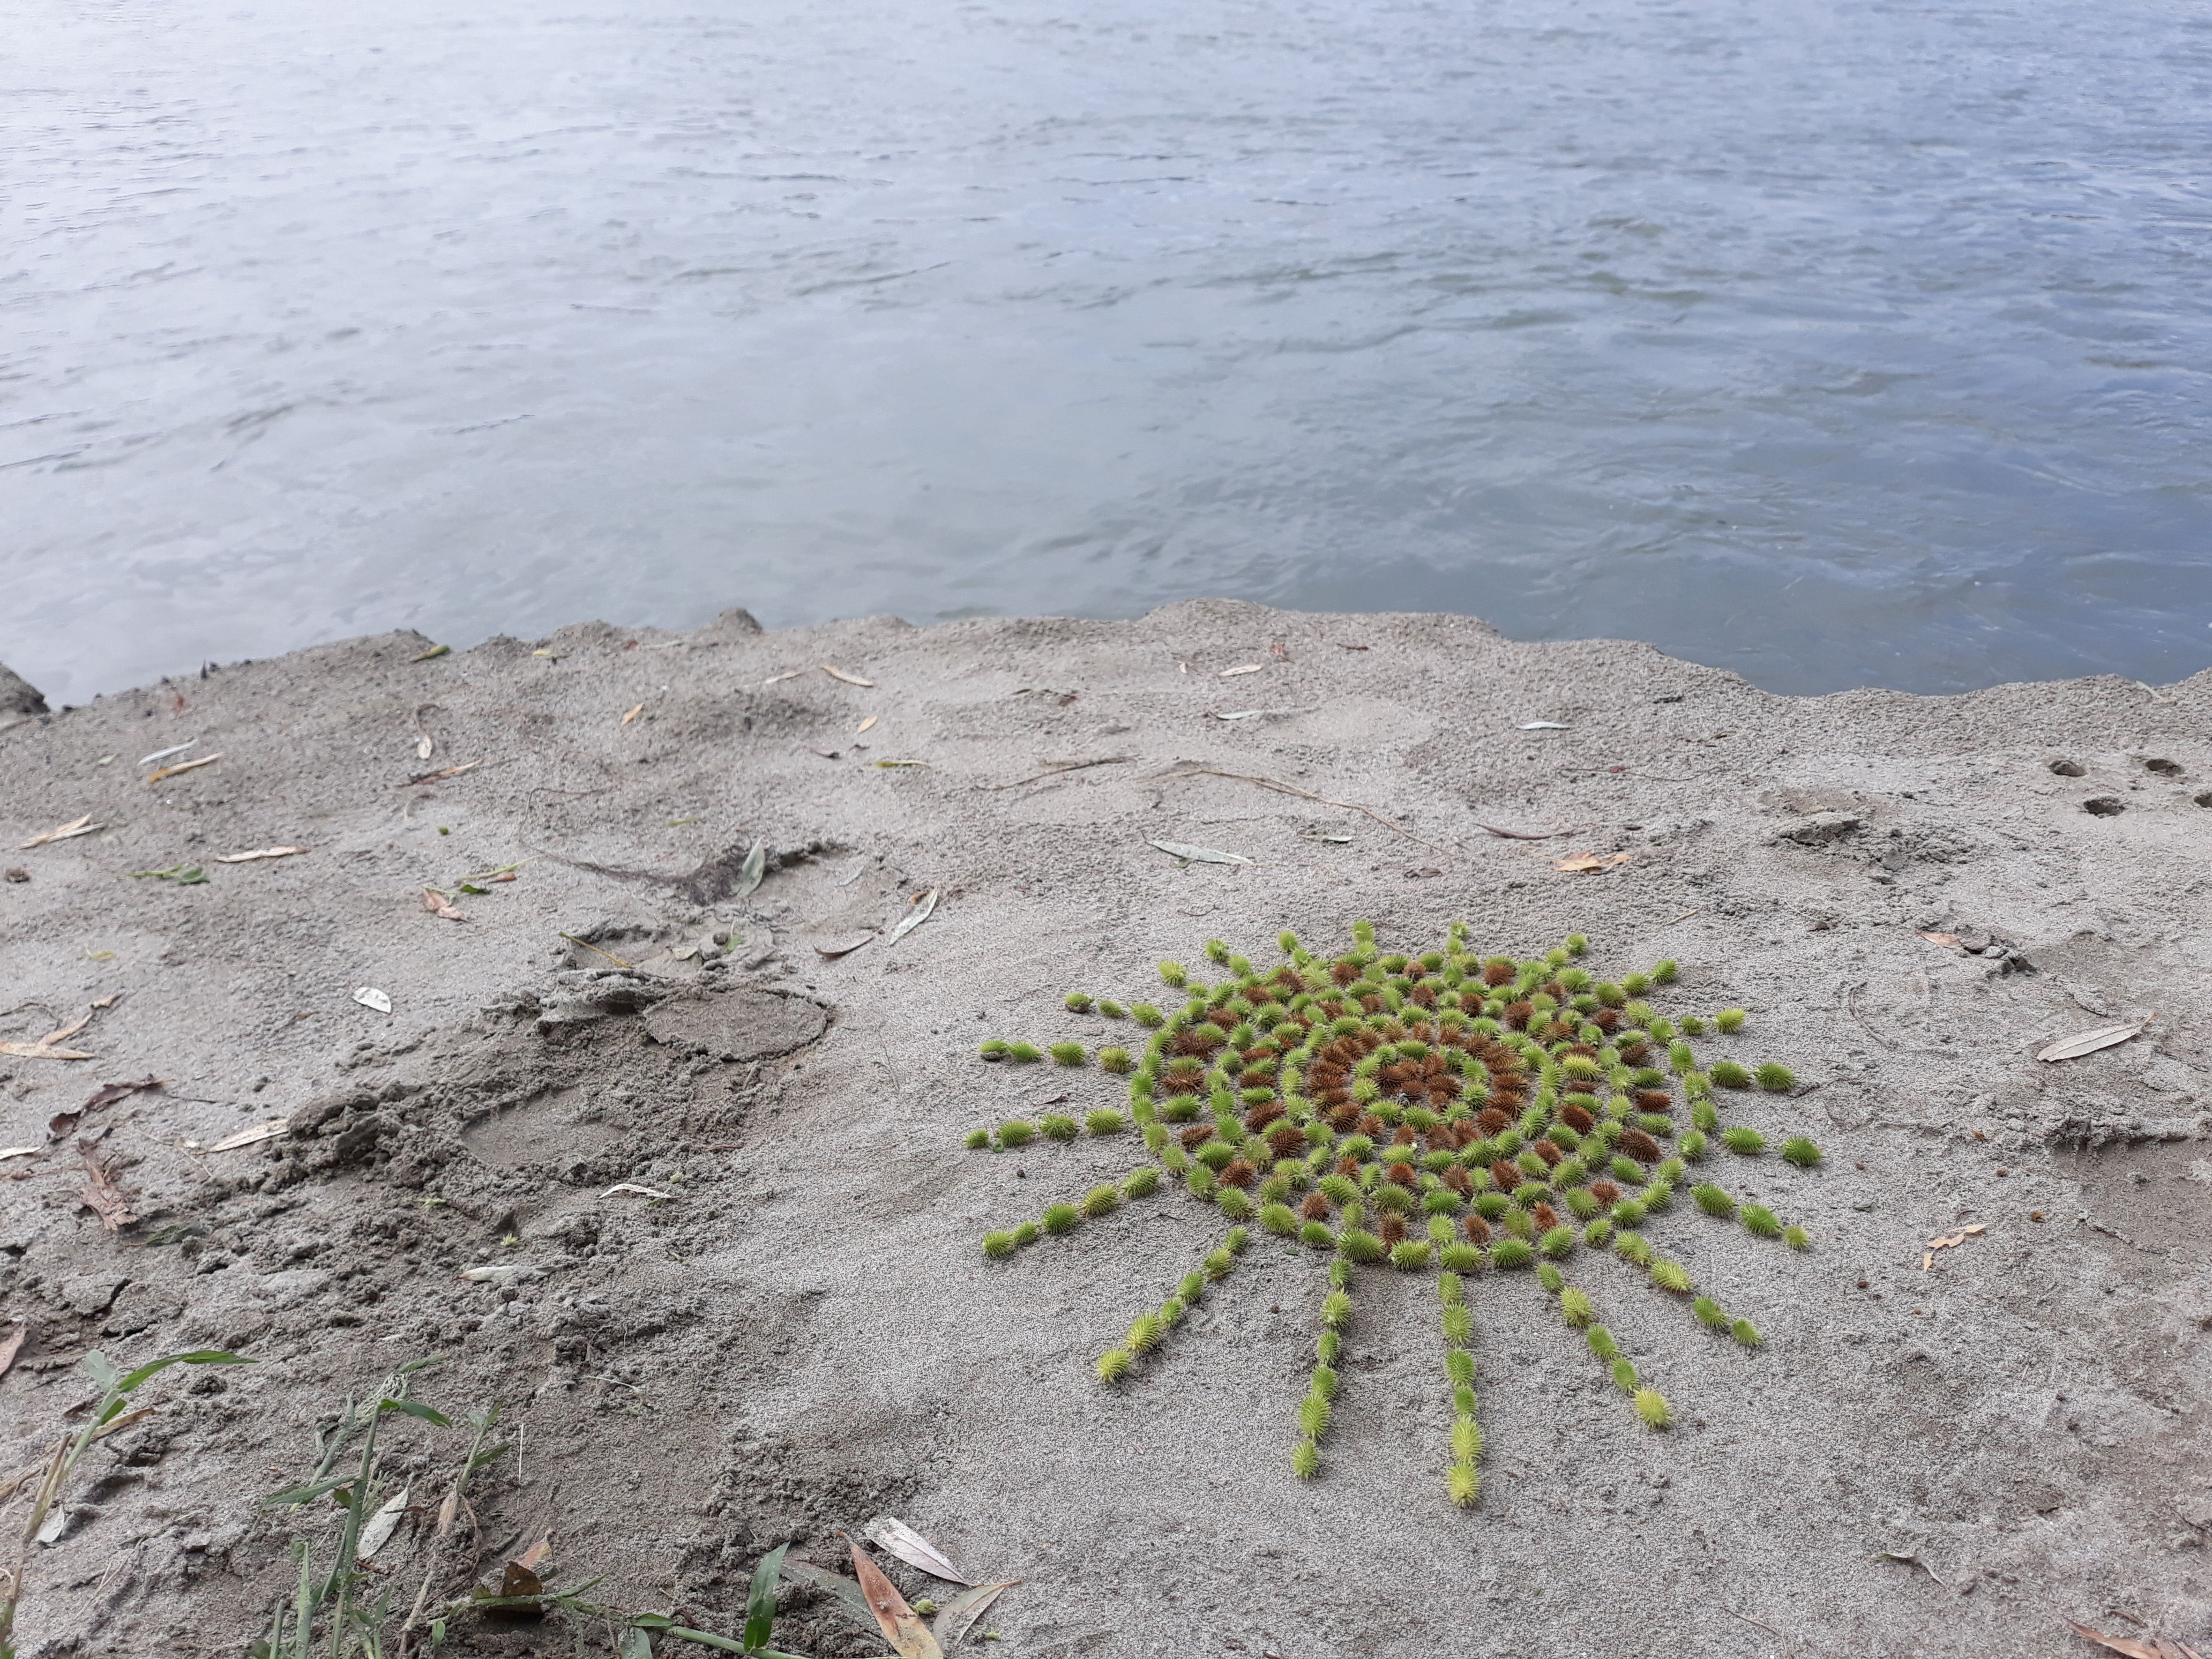 FLOWER emphimeral land art work made with organic materials by Emanuela Camacci